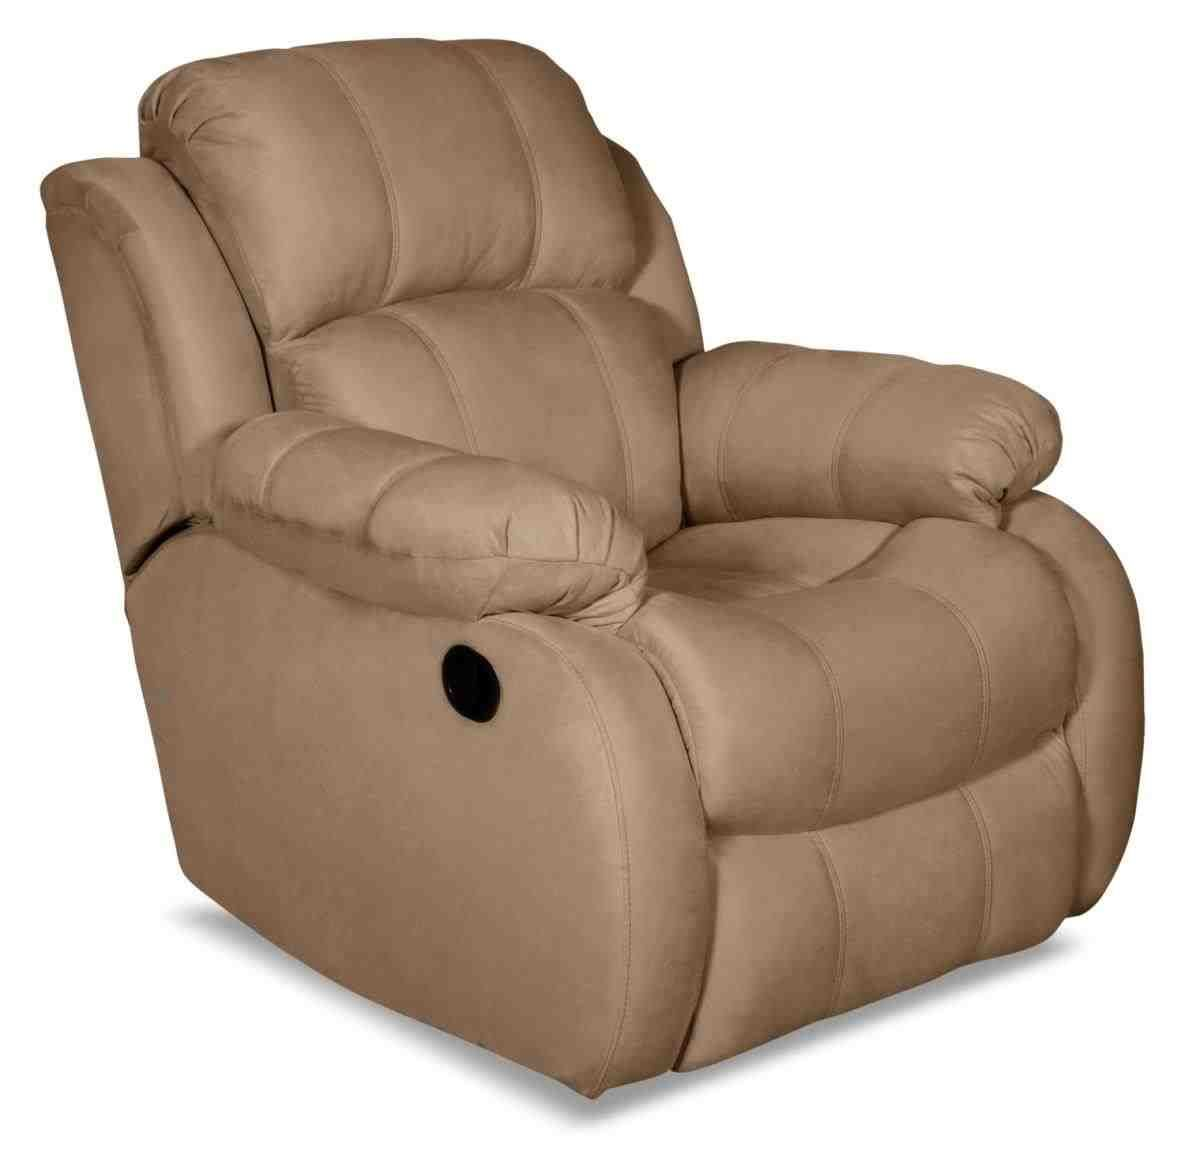 Groovy Cheap Recliners Ottawa Loveseats Cheap New Living Room Gmtry Best Dining Table And Chair Ideas Images Gmtryco